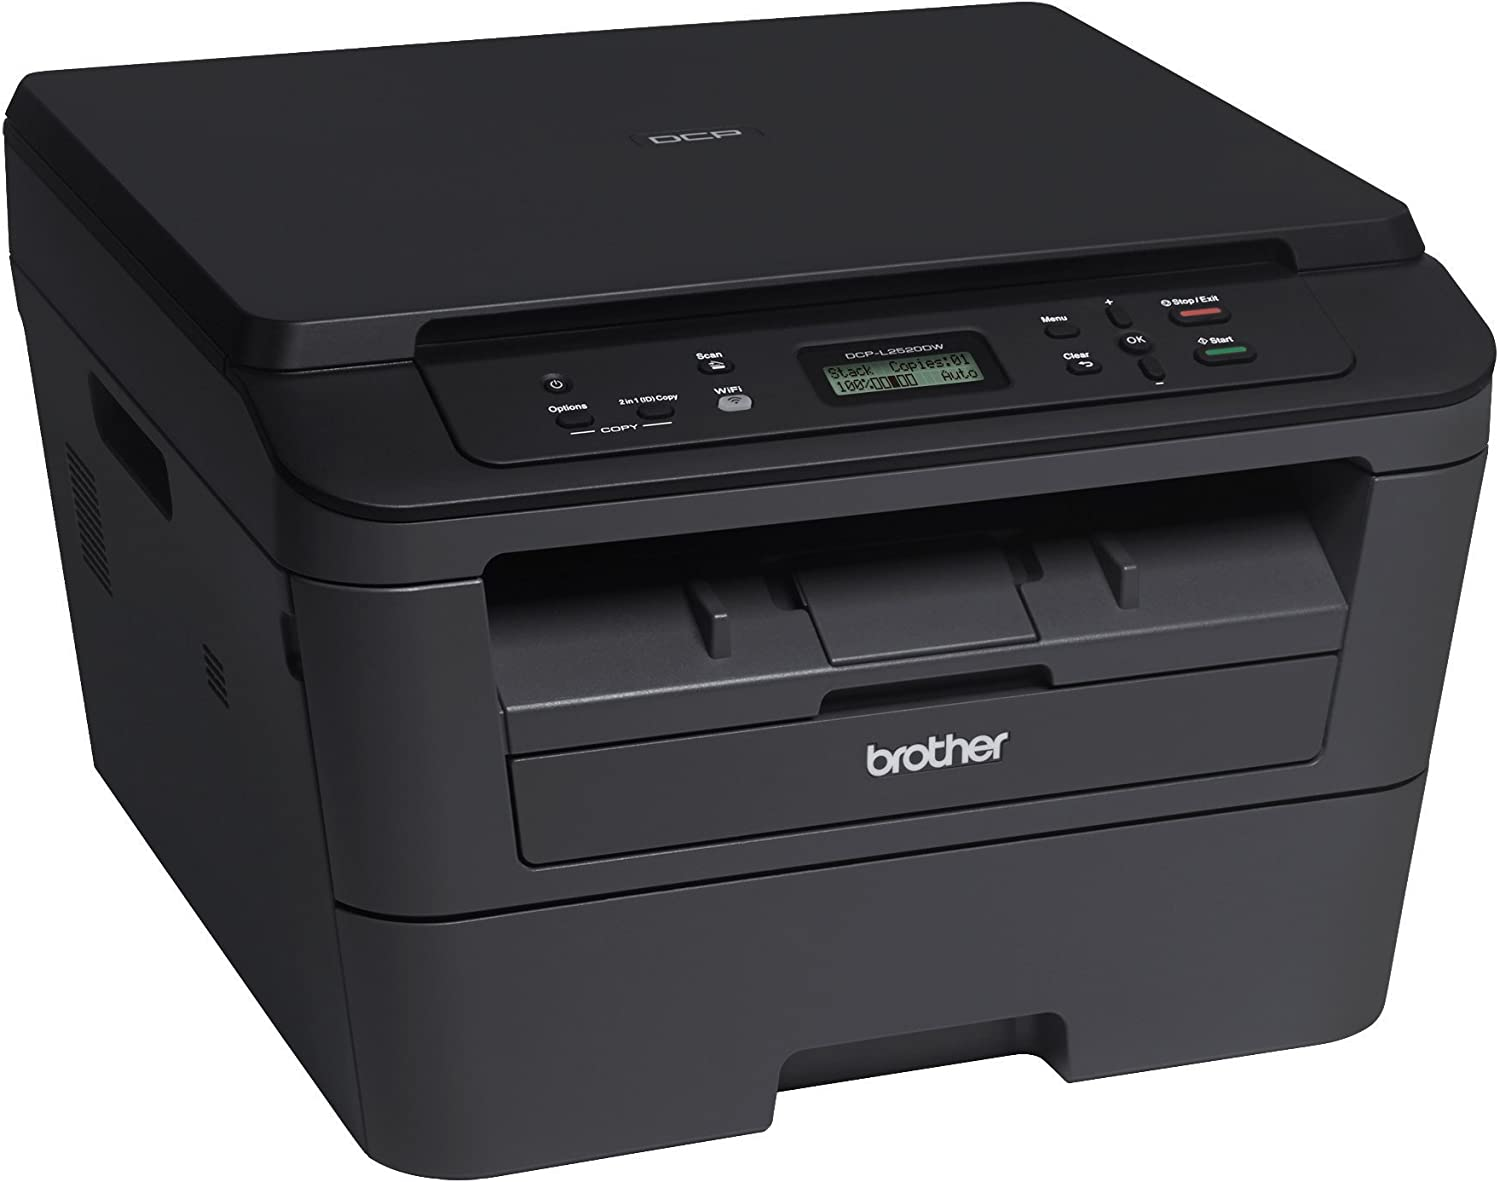 Amazon.com: Impresora láser Brother DCPL2520DW ...